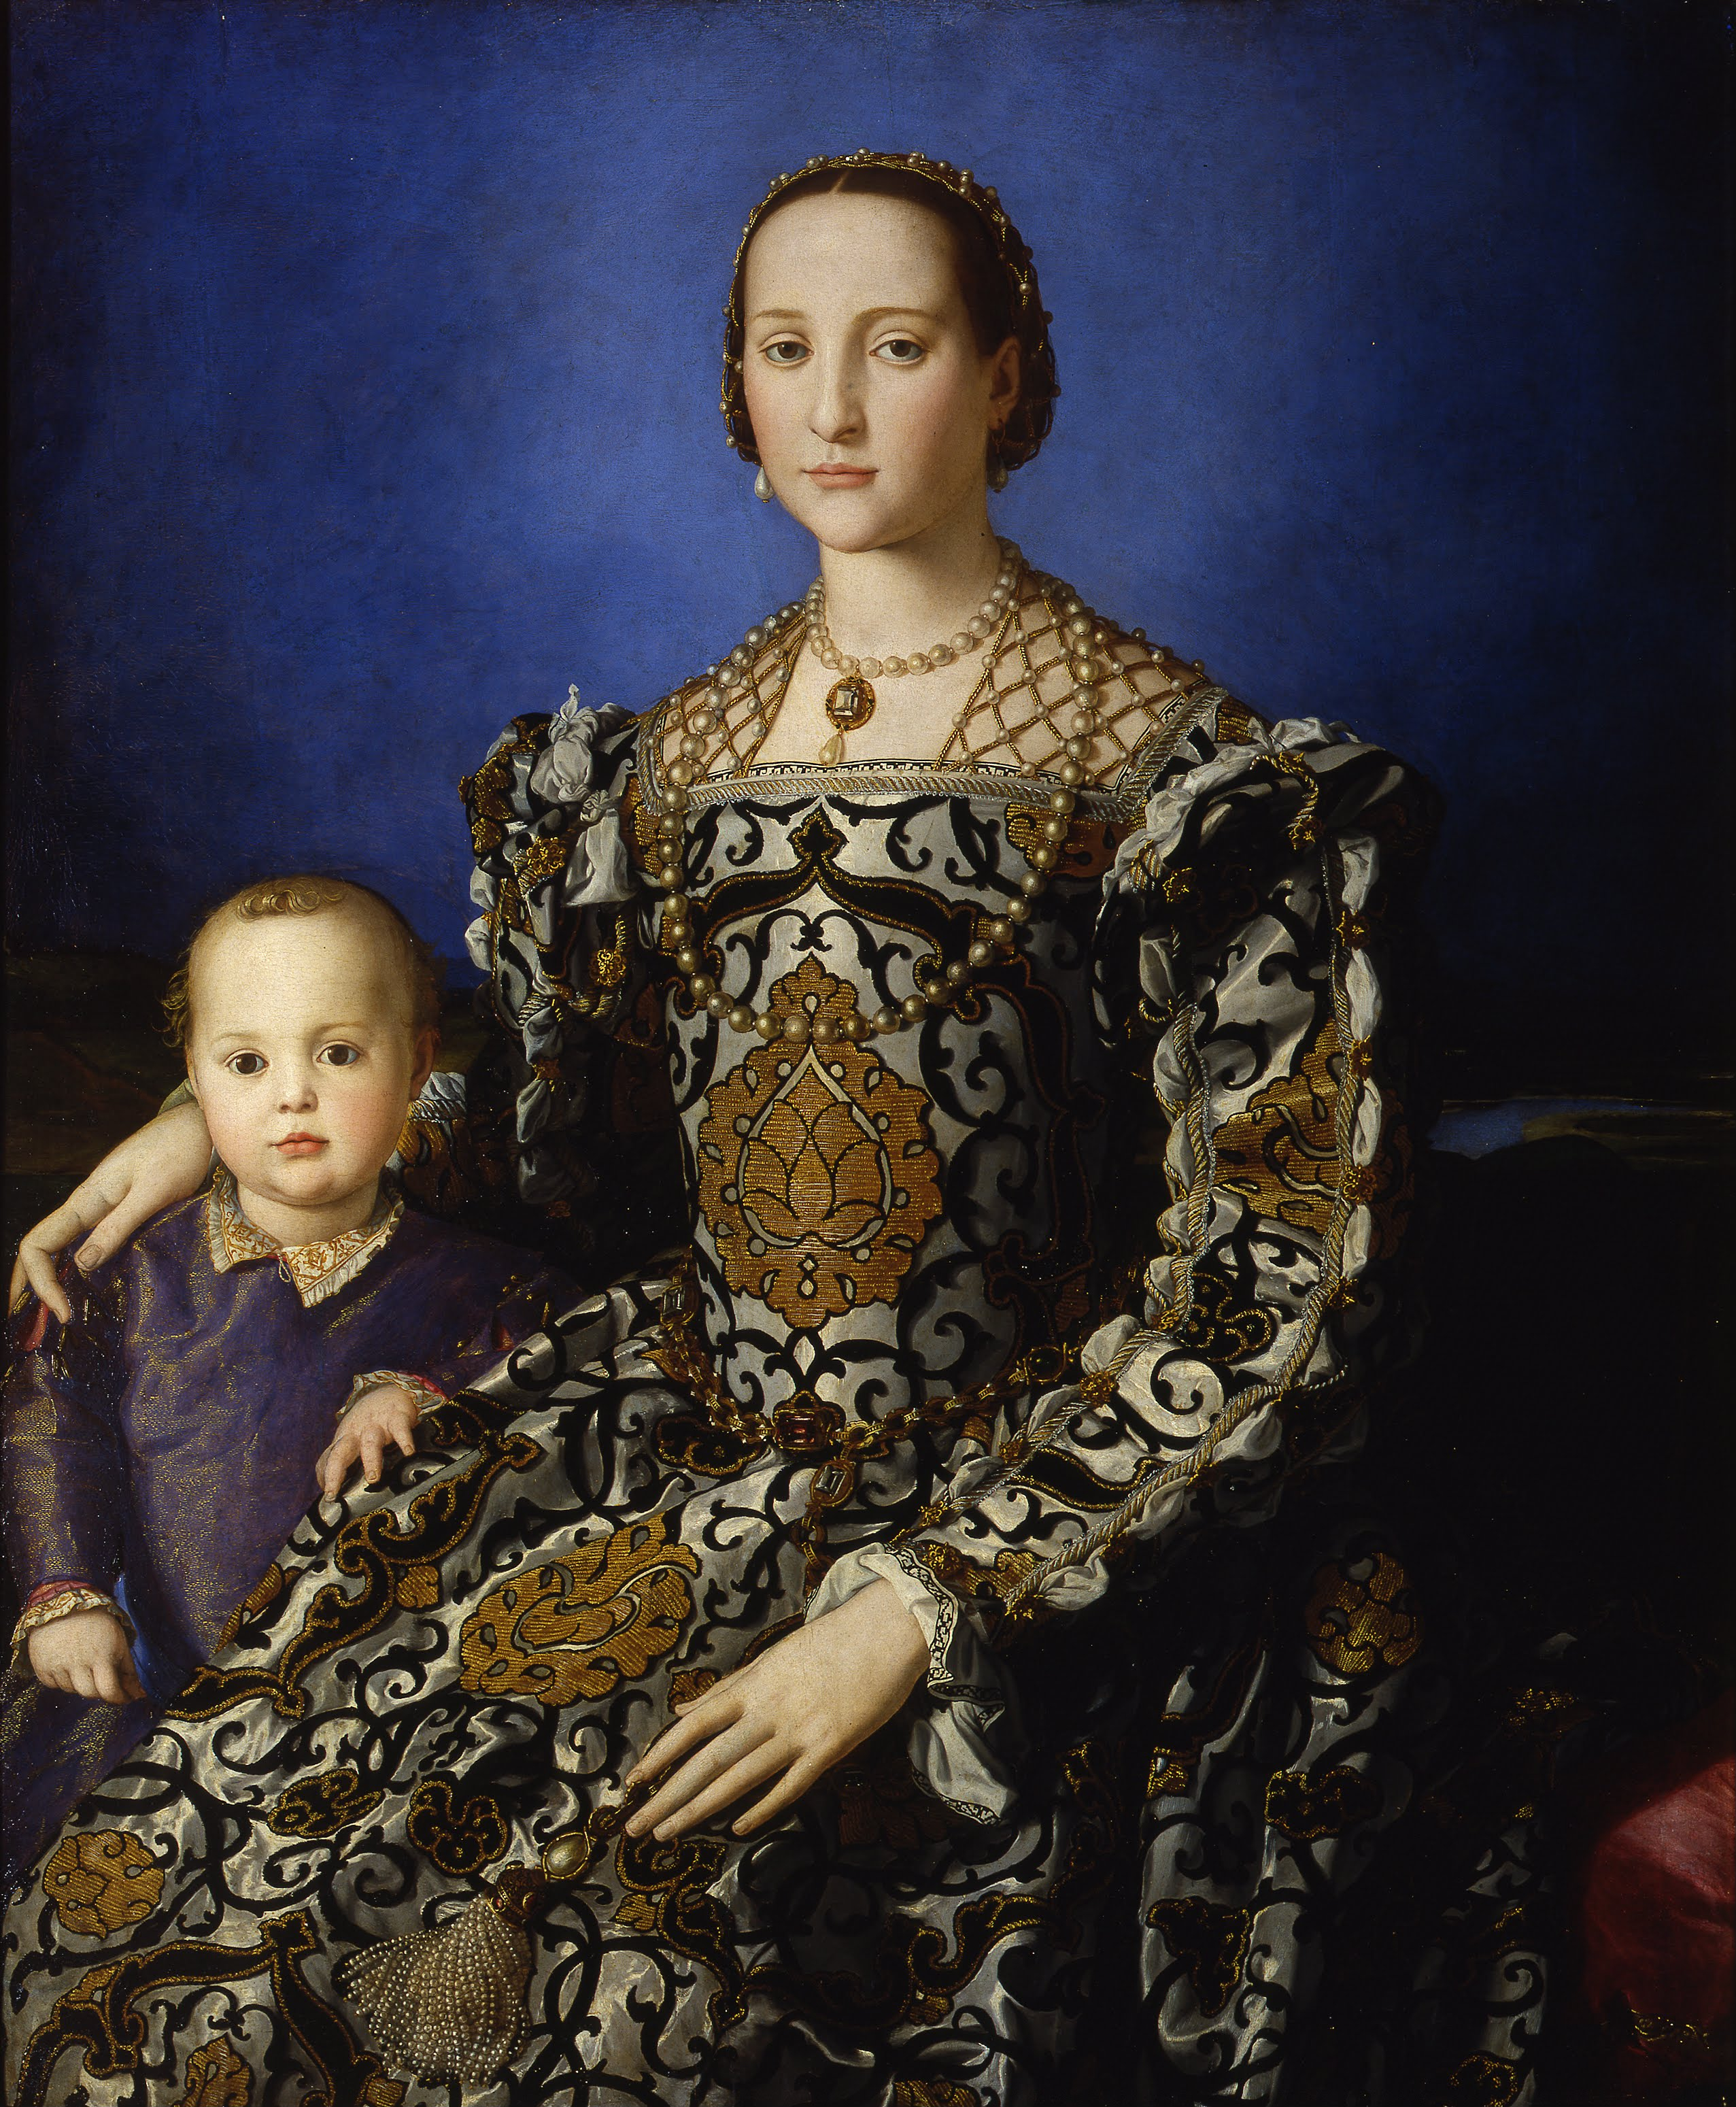 https://upload.wikimedia.org/wikipedia/commons/f/f0/Bronzino_-_Eleonora_di_Toledo_col_figlio_Giovanni_-_Google_Art_Project.jpg